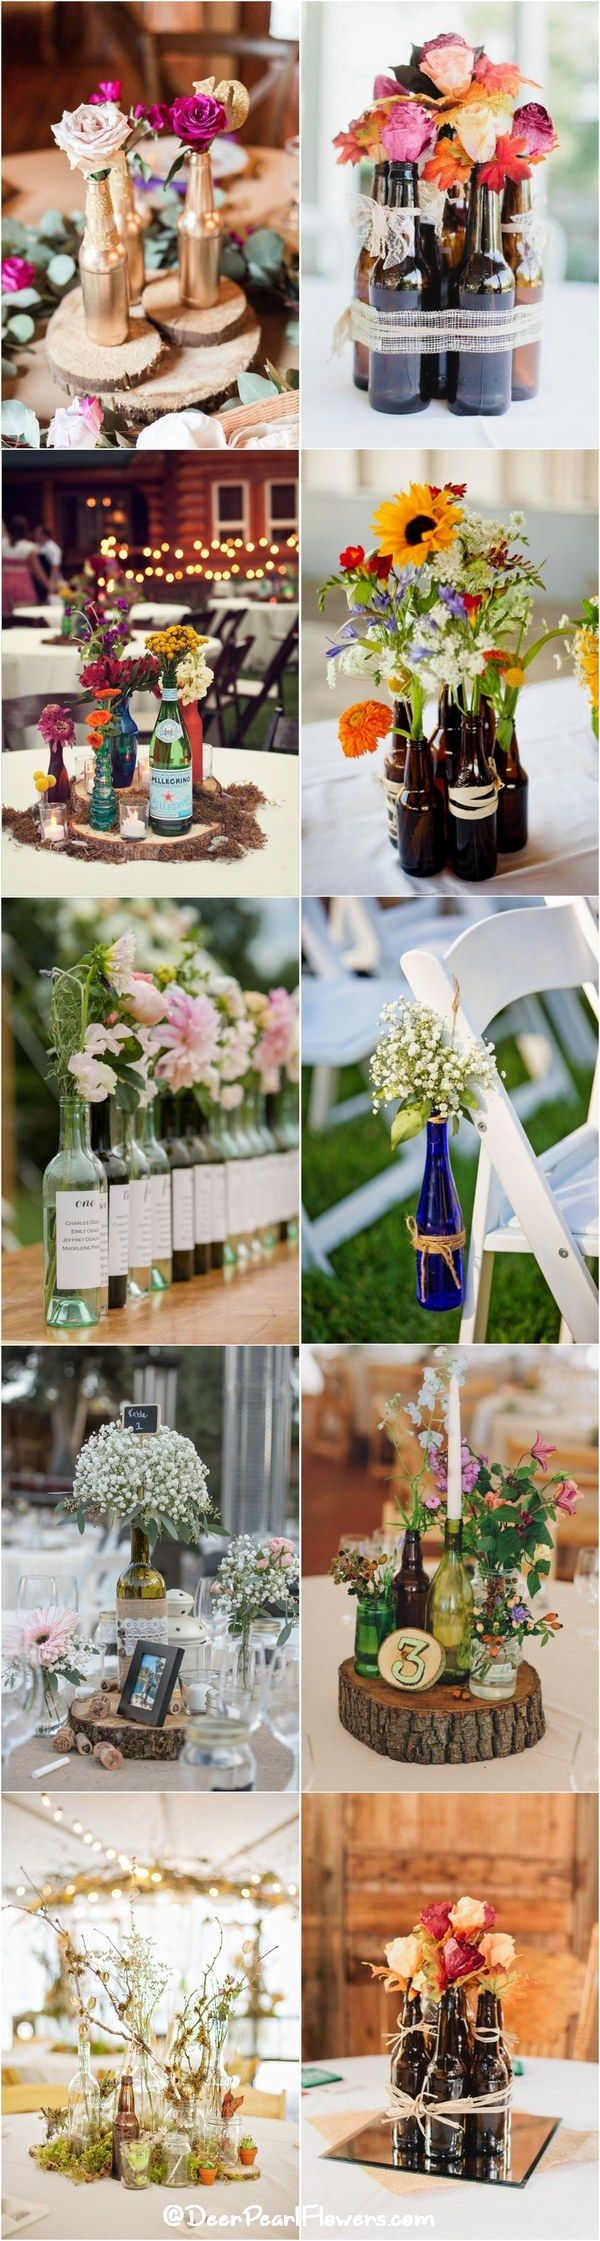 Wine bottle vineyard wedding ideas / http://www.deerpearlflowers.com/wine-bottle-vineyard-wedding-decor-ideas/